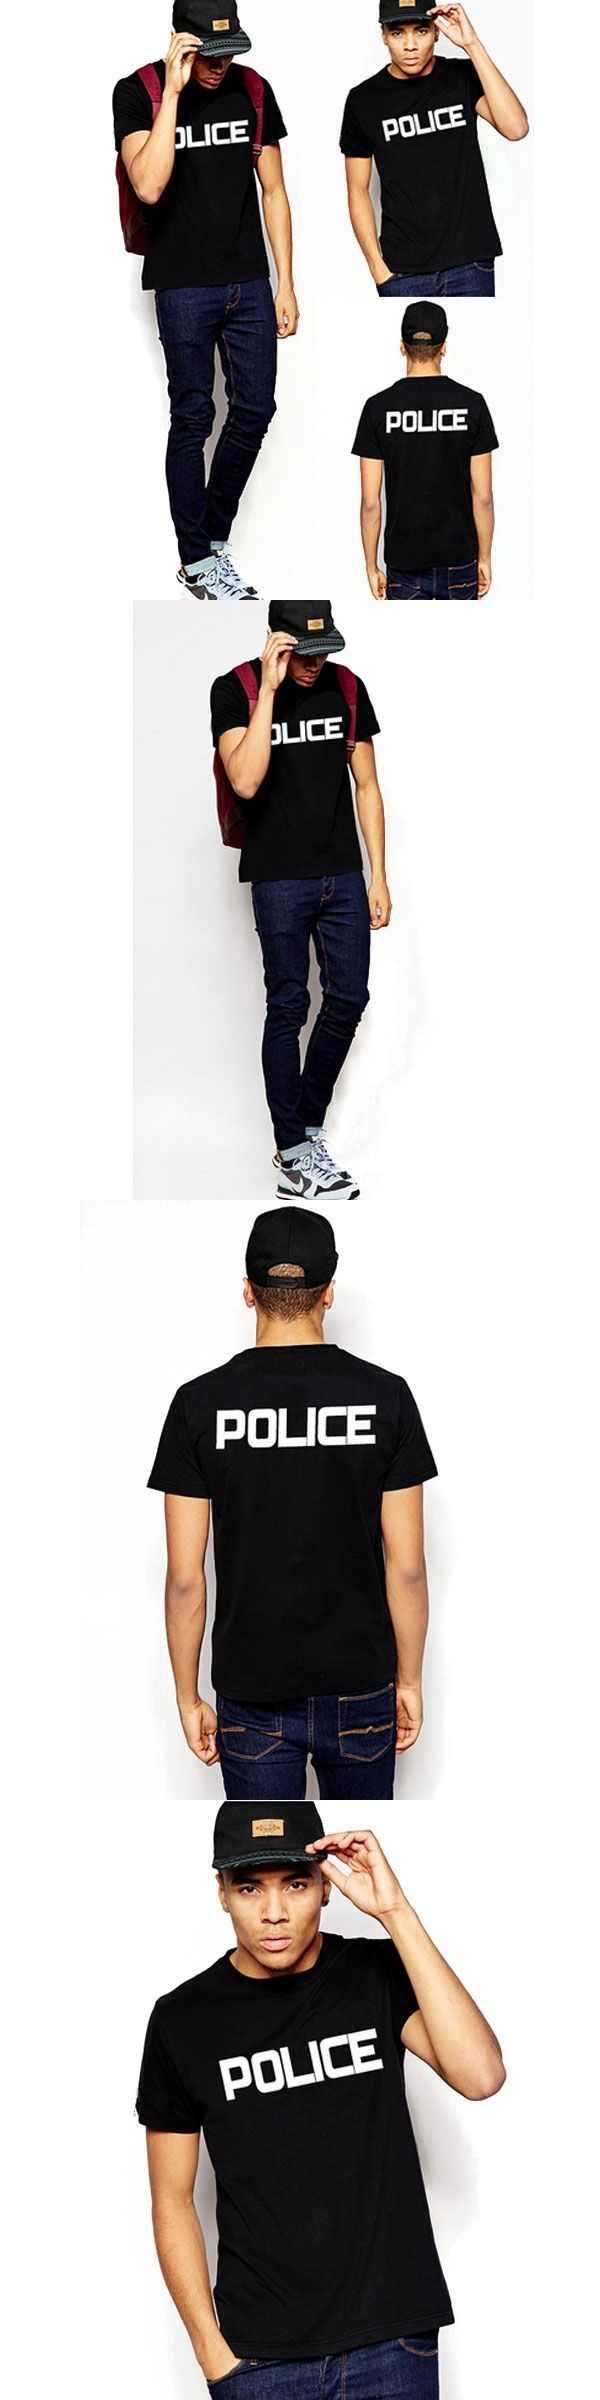 IM SECURITY POLICE SHERIFF SWAT Graphic T-Shirts PYERX JAY-Z T Shirt  ASAP Rocky  kanye west  100%cotton